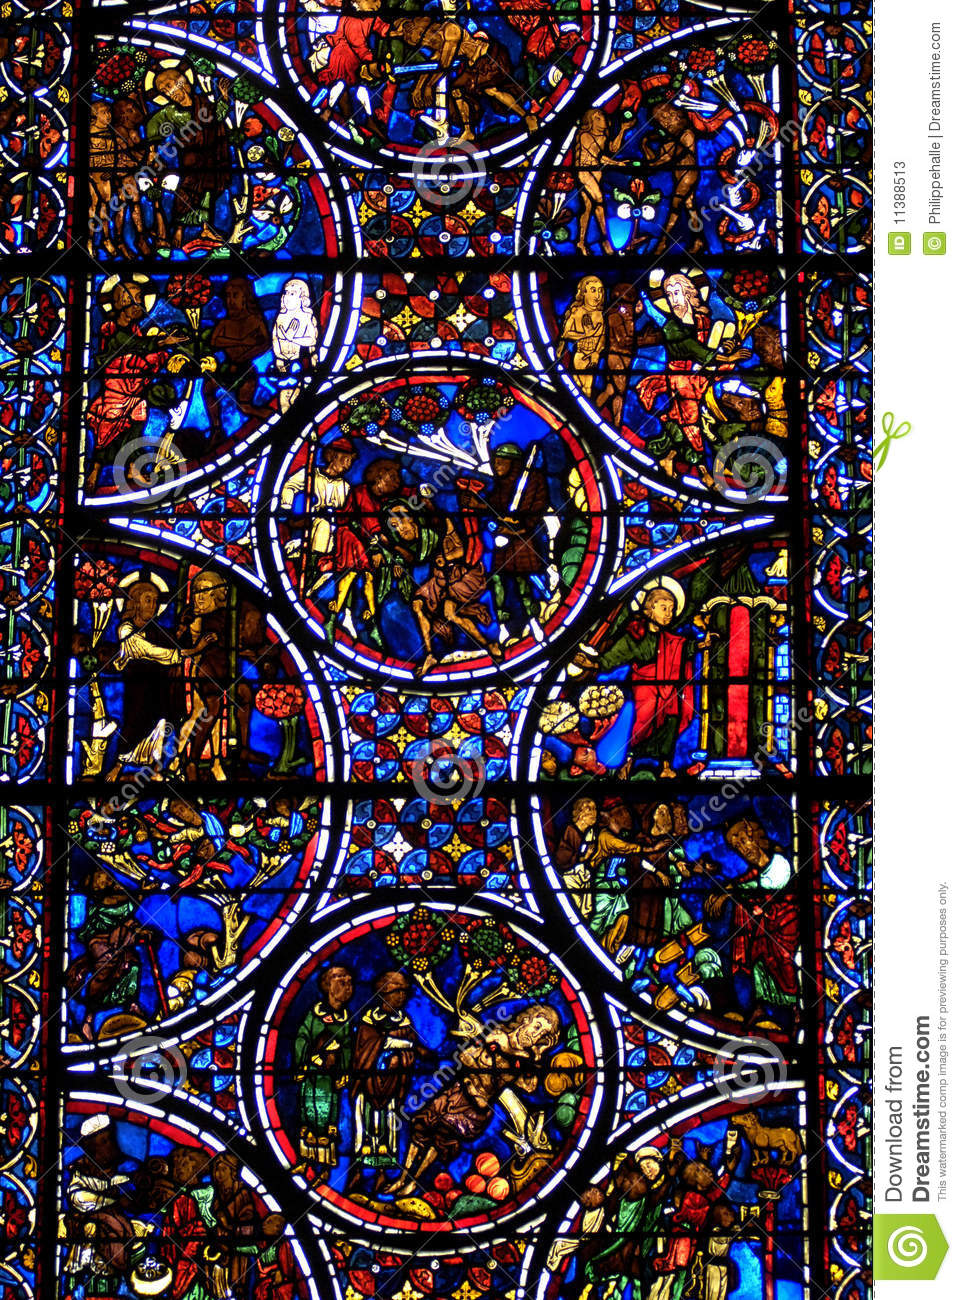 France cathedral of bourges stock image image 11388513 - Stock industriel bourges ...